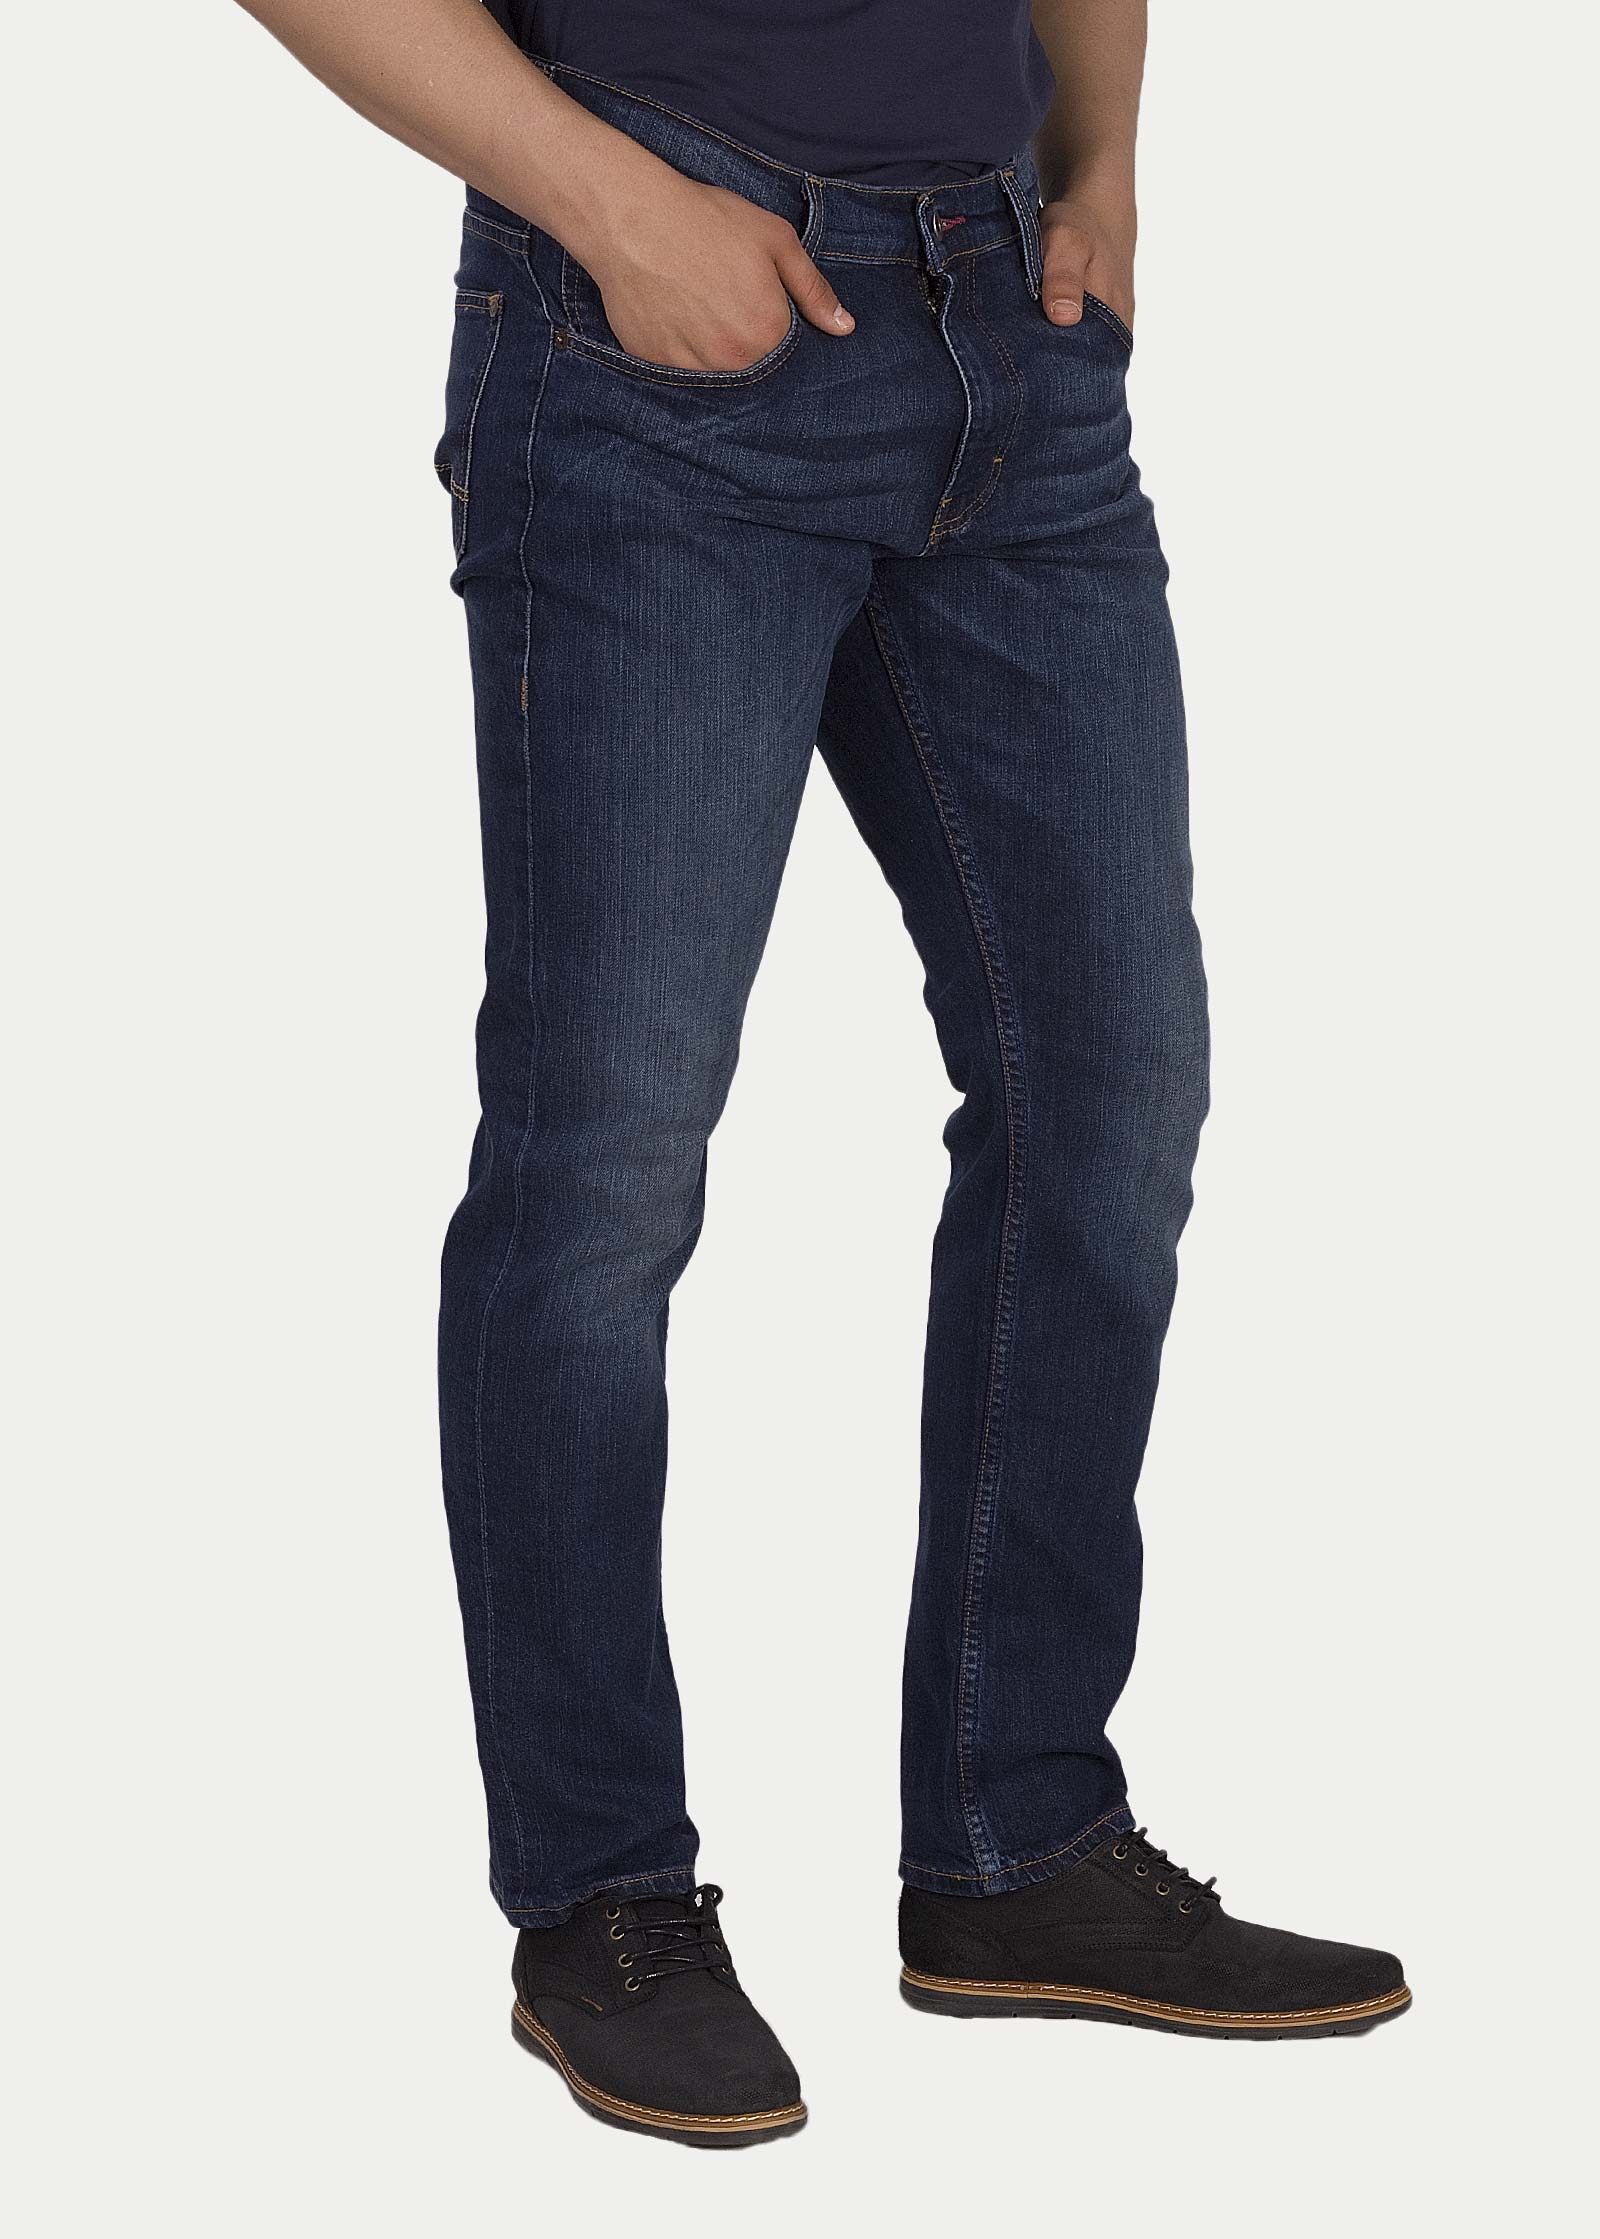 Men s Jeans Mustang® Chicago Tapered - Dark Scratched Used (3156 ... 04f068432b